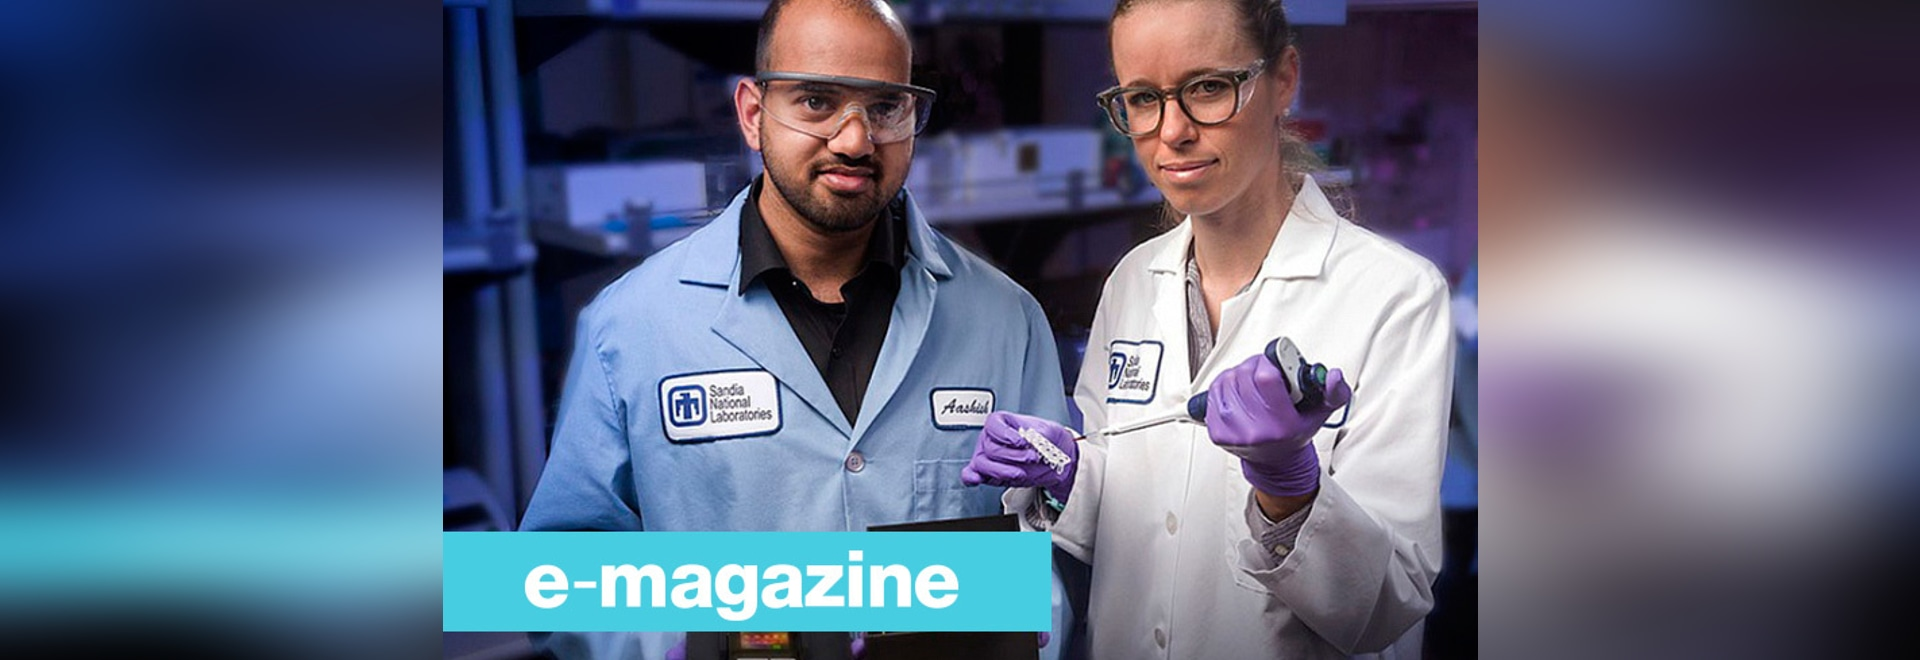 Sandia National Laboratories chemical engineer and lead paper author Aashish Priye offers a view into the Zika box prototype, along with co-authors Sara Bird, a virologist, center, and Cameron Ball...